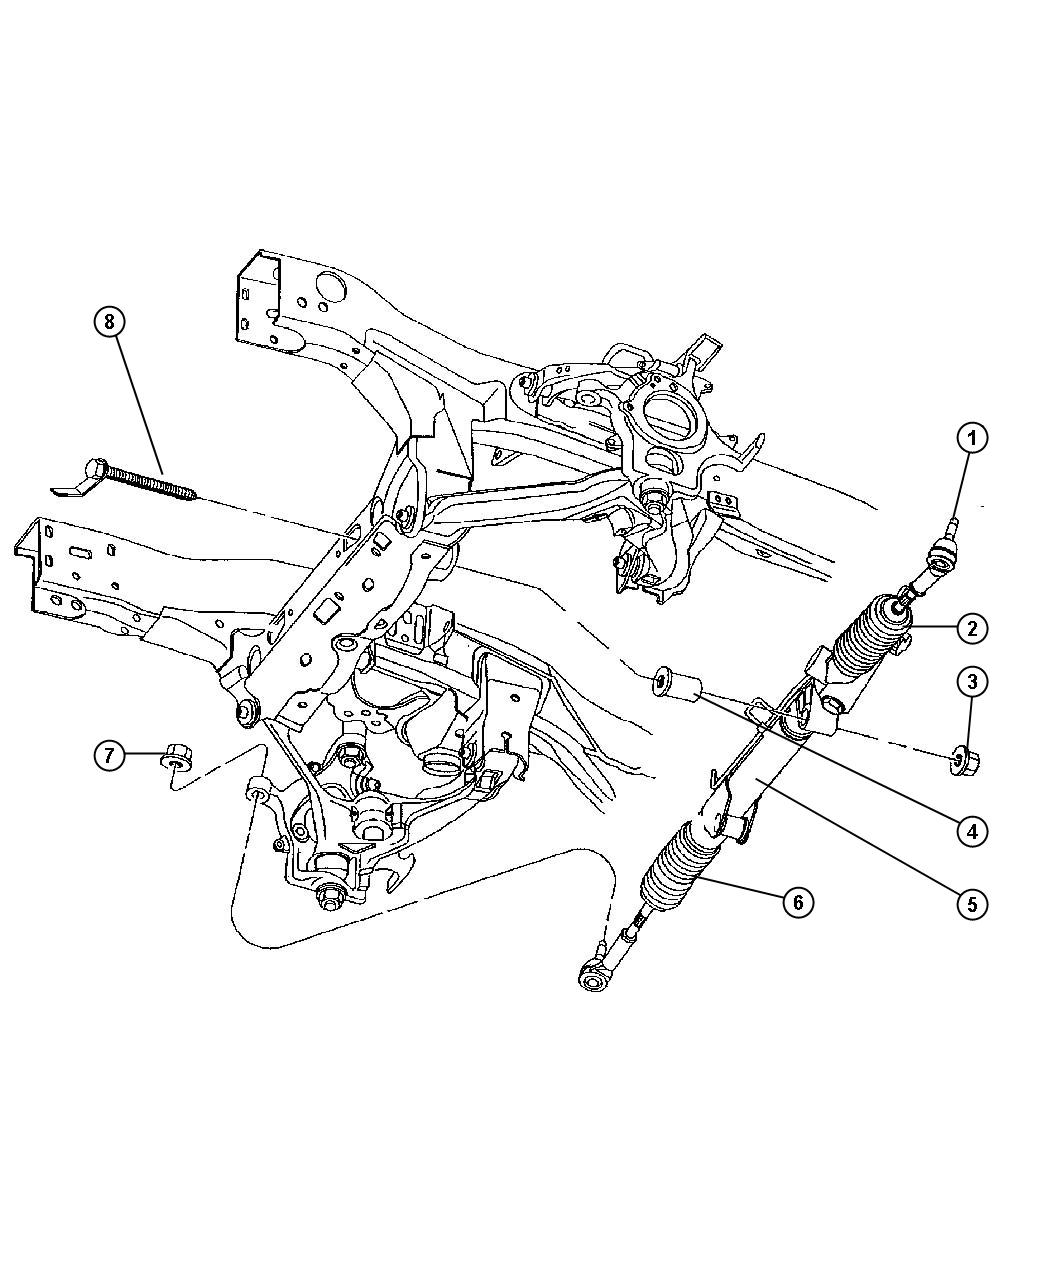 Dodge Durango Rack And Pinion Diagrams